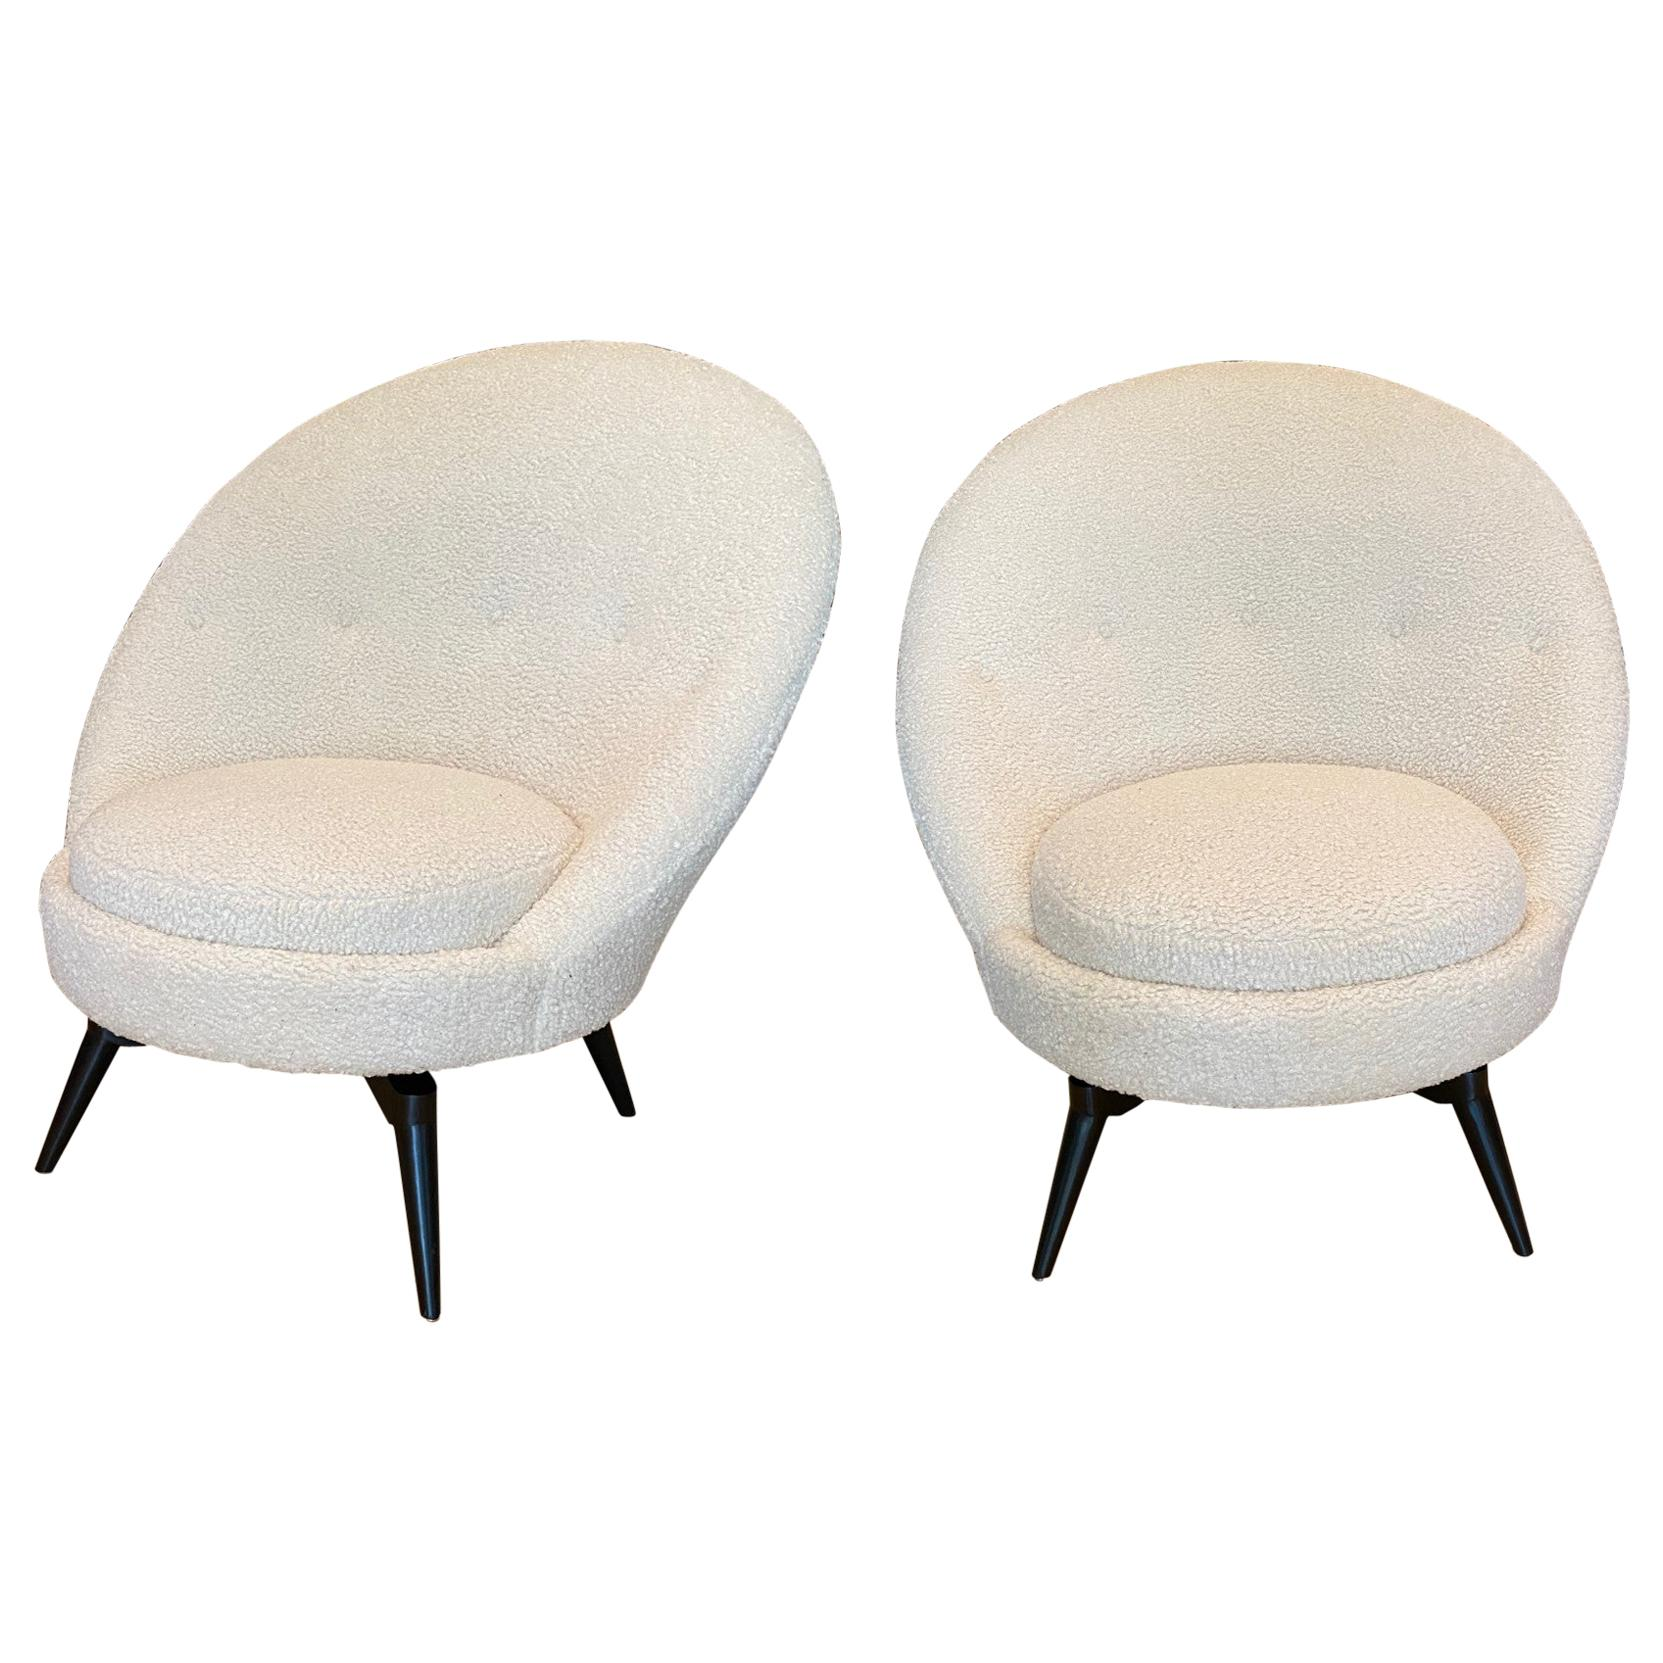 Pair of Swivel Lounge Chairs in White Bouclé